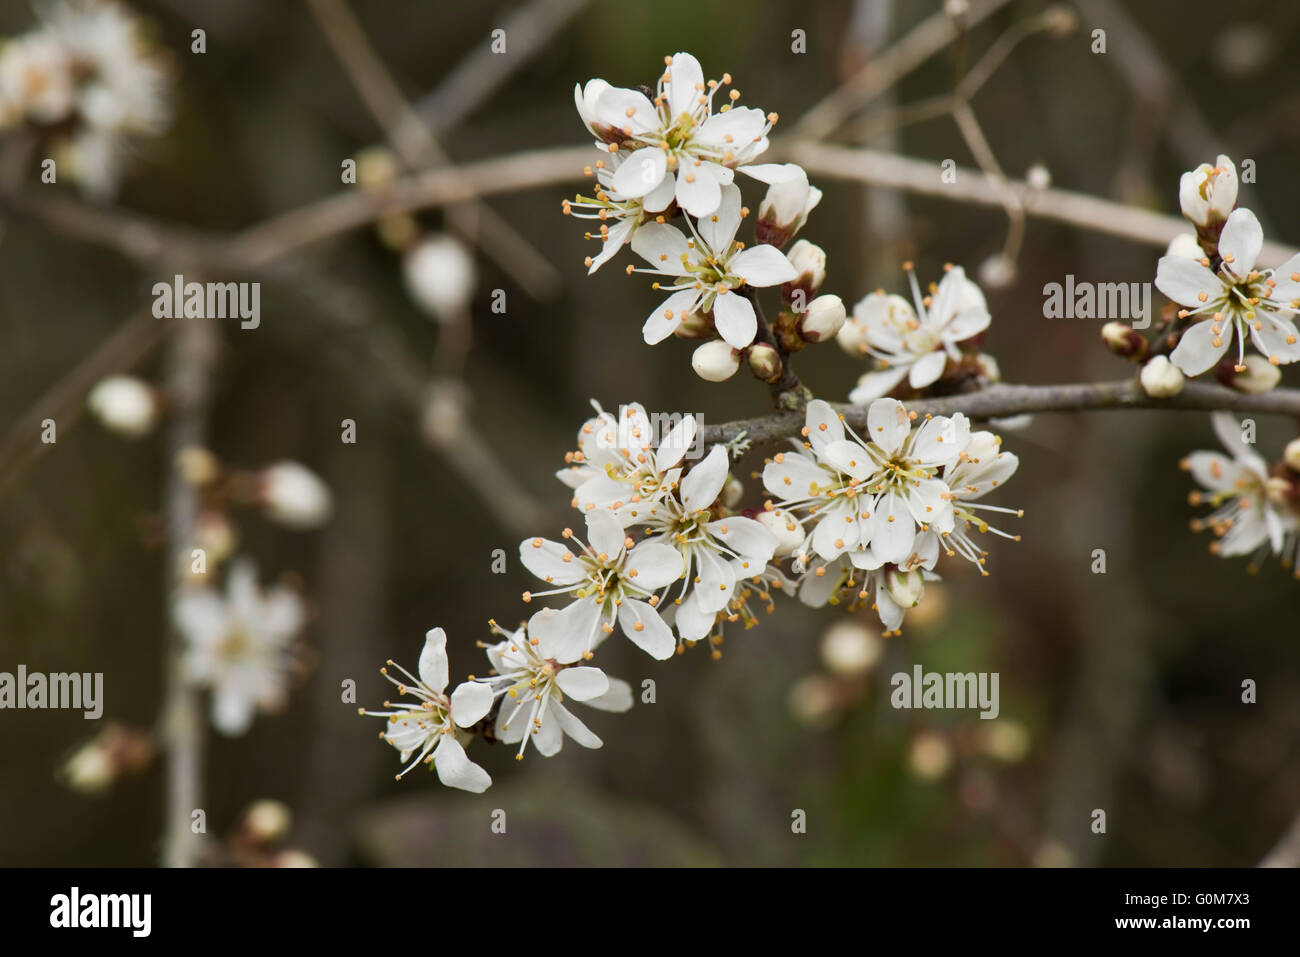 Flowers on blackthorn or sloe, Prunus spinosa, on a leafless hedge bush in spring, Berkshire, April Stock Photo